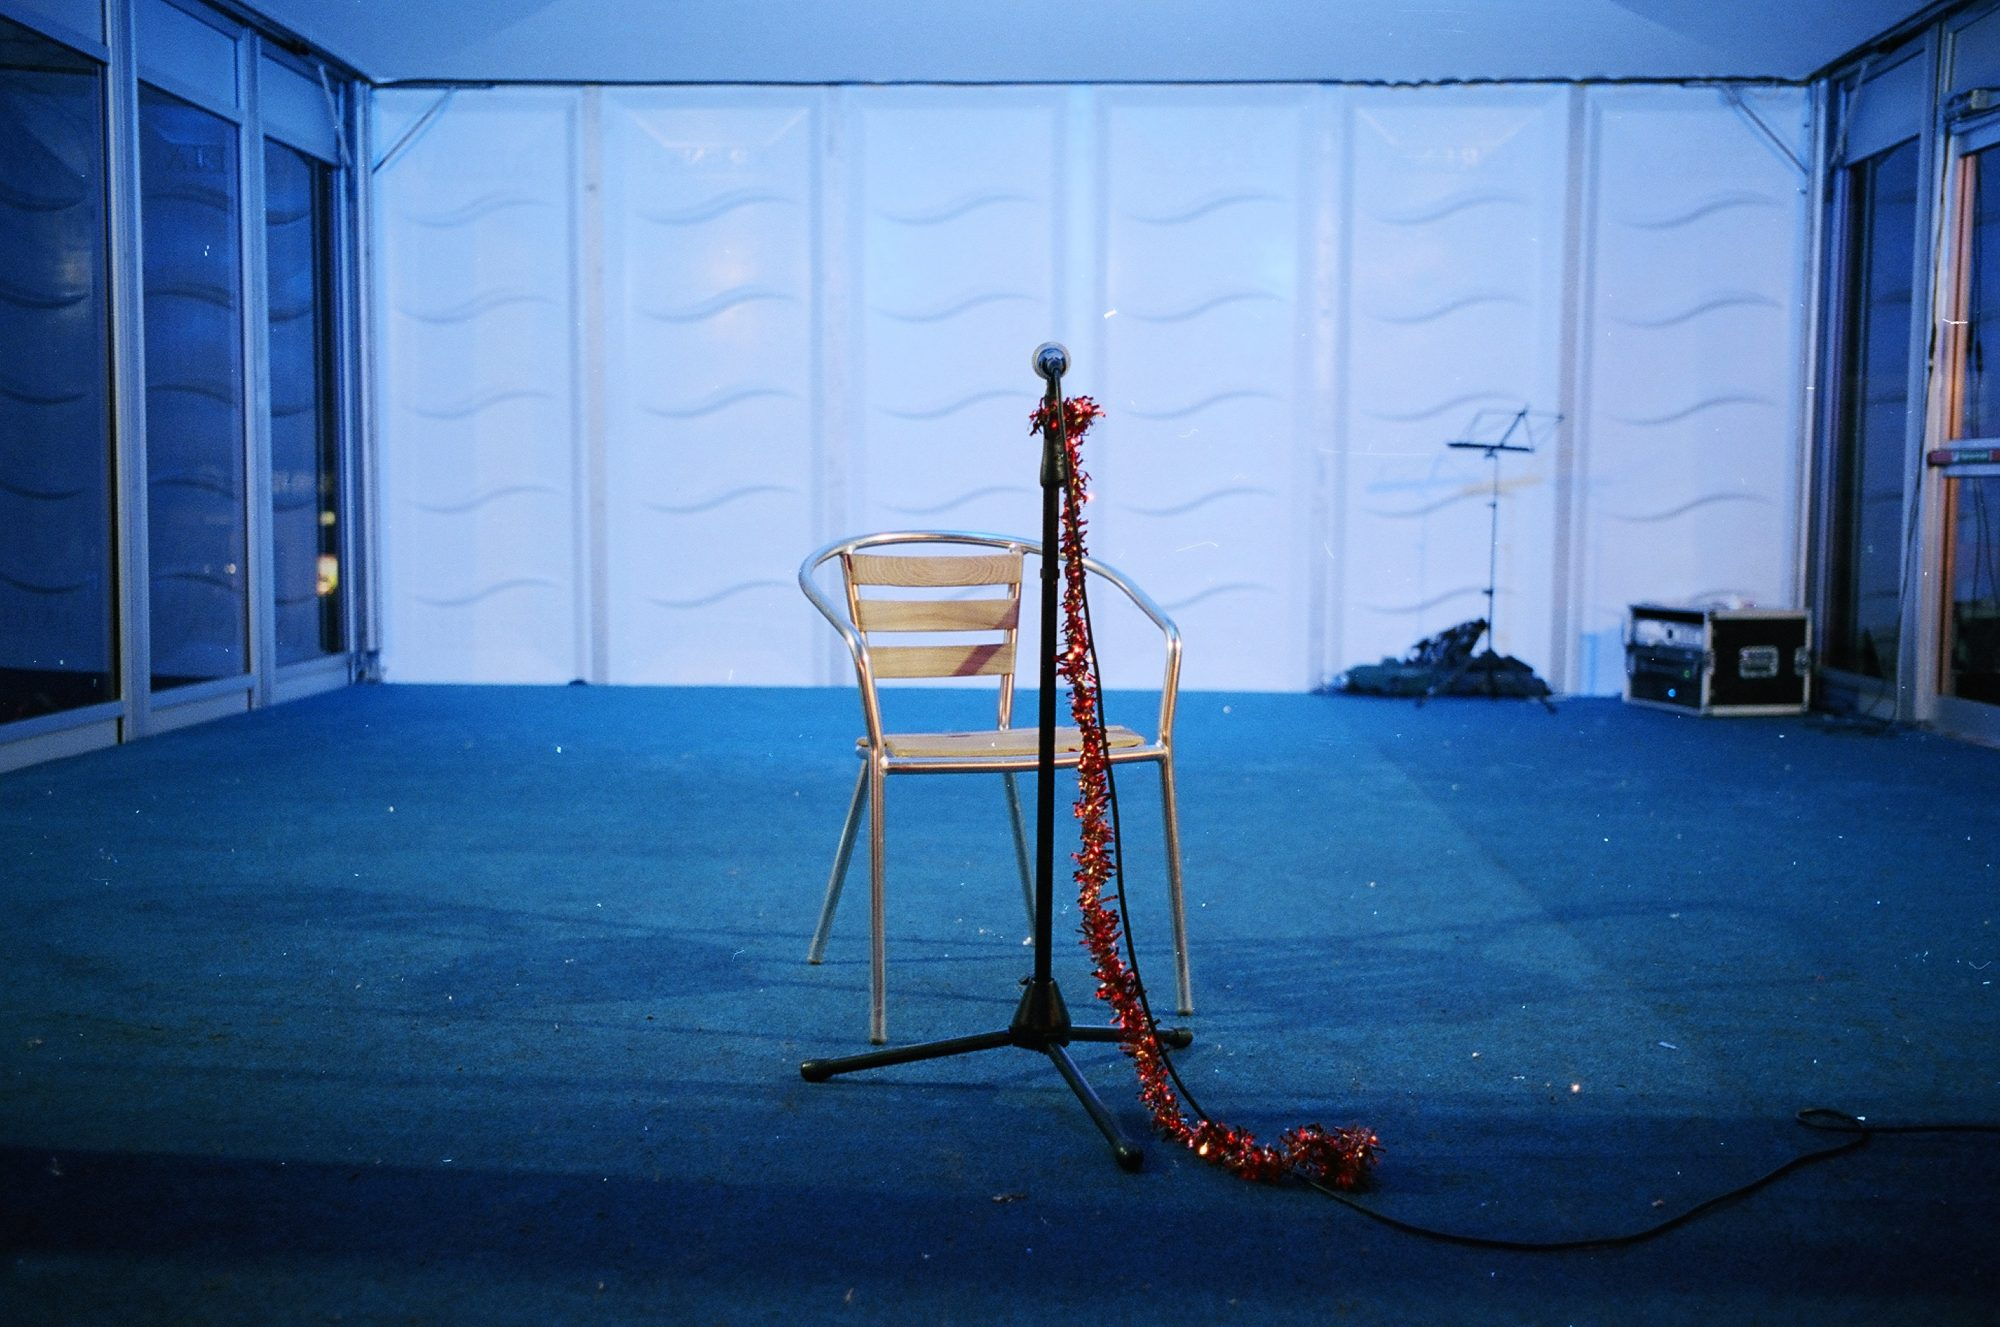 Beauty of a lone chair against a blue background, and microphone stand in red ribbon.